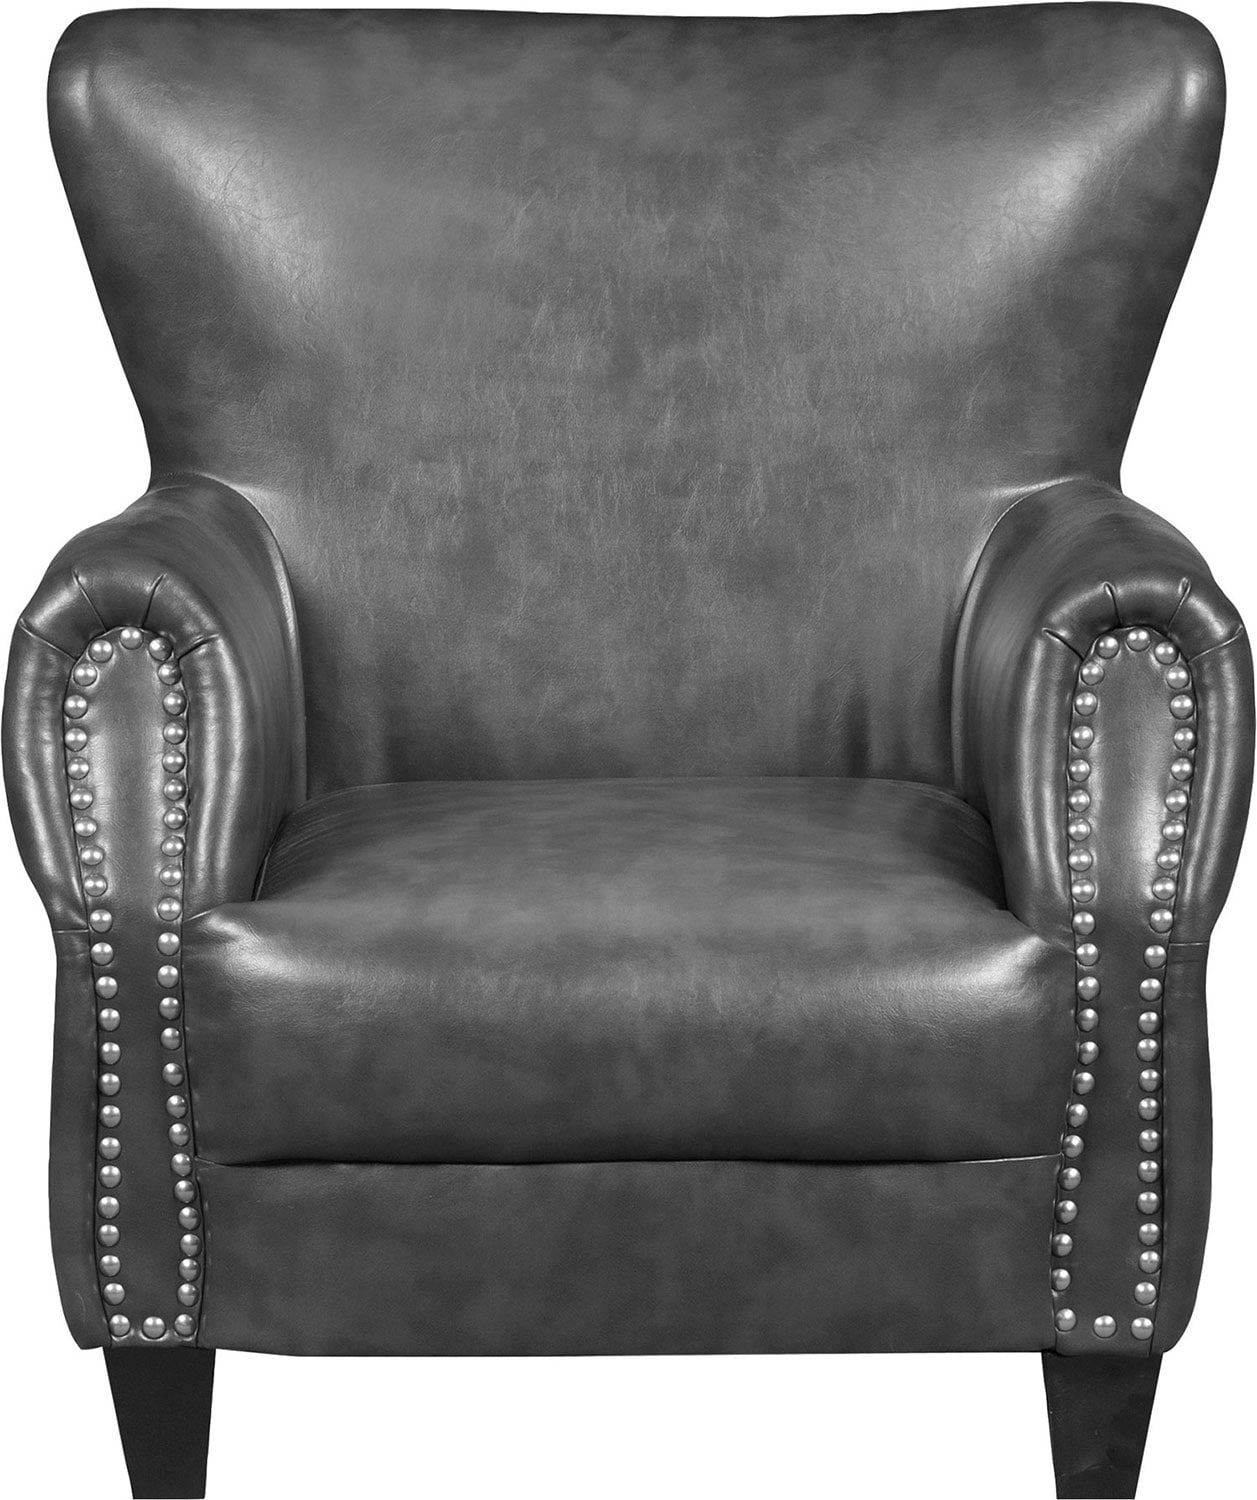 flint bonded leather accent chair  grey  the brick -